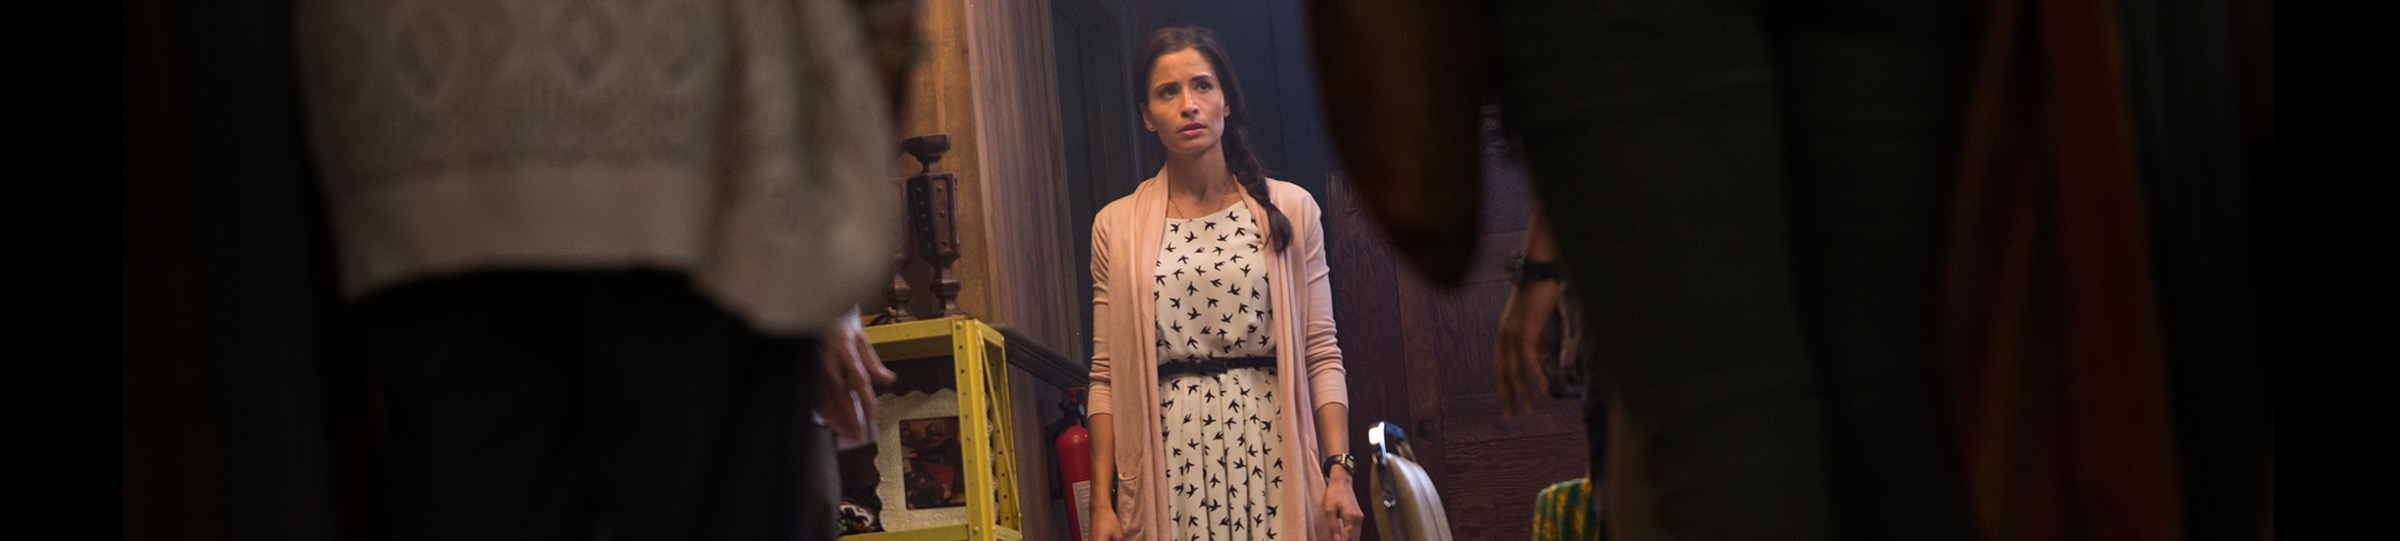 fear-the-walking-dead-entrevista-mercedes-mason-ofelia-001